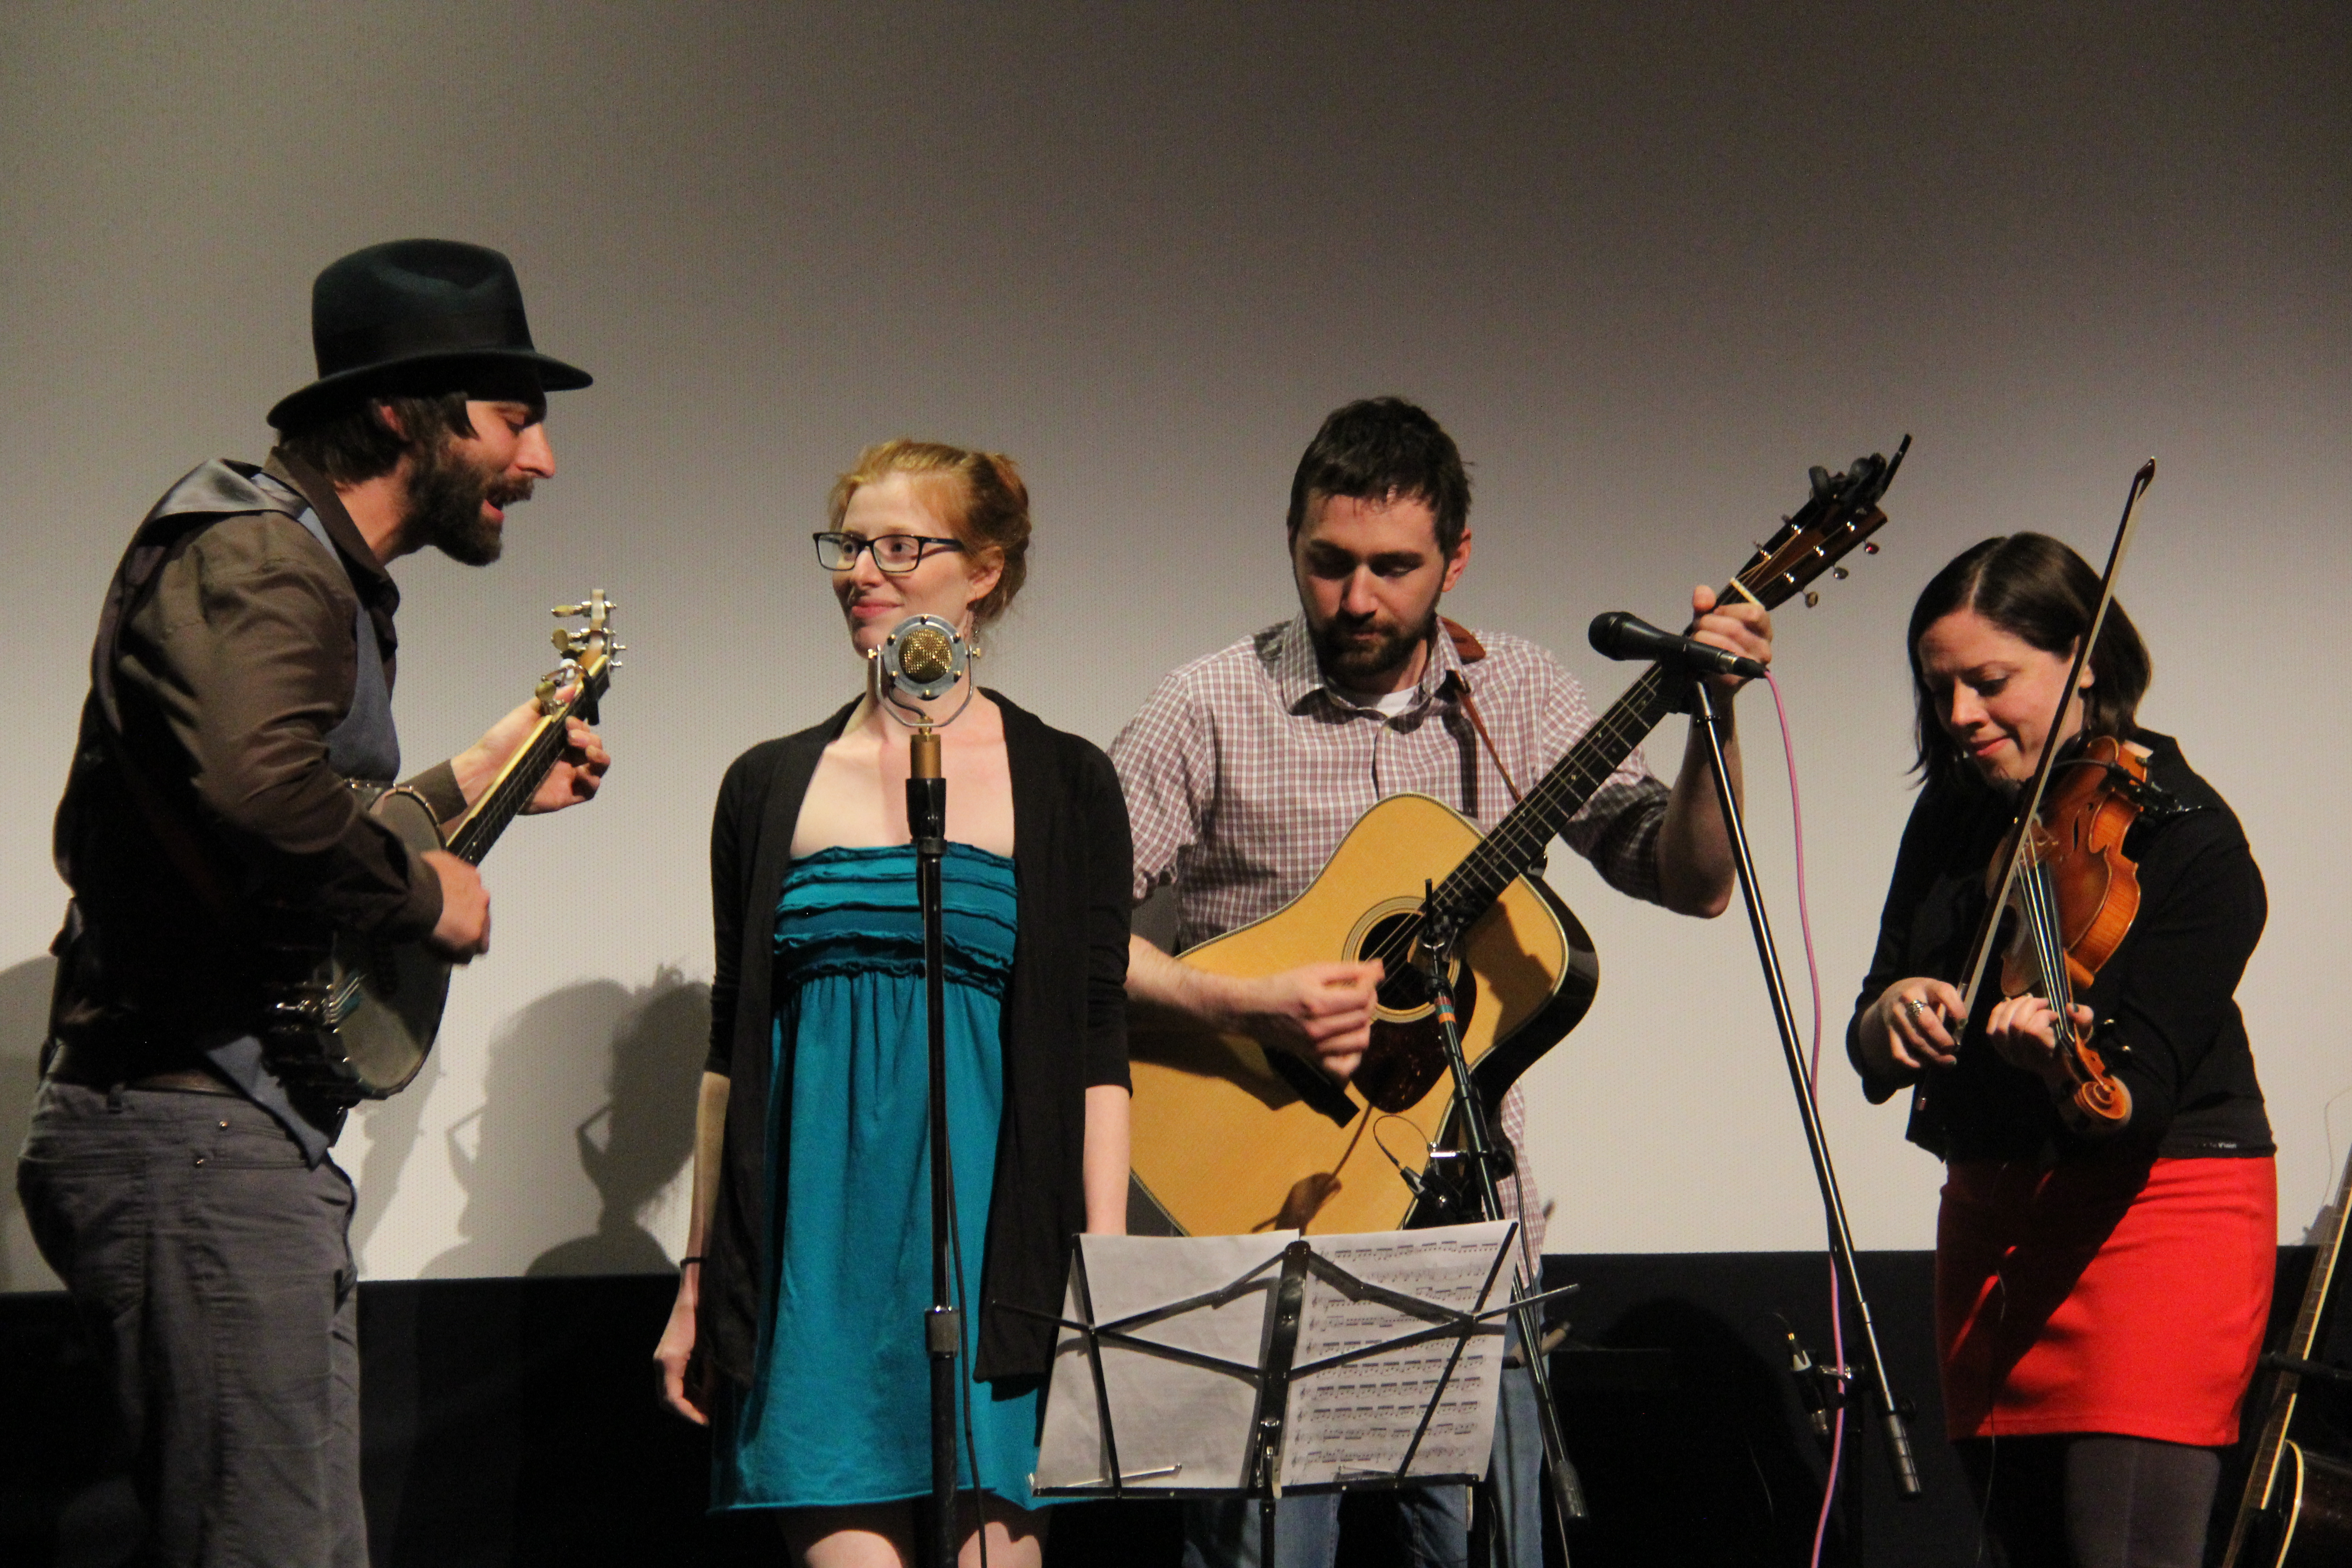 Timberbound presents: The Northwest Folk Songs of Woody Guthrie and other Ramblers